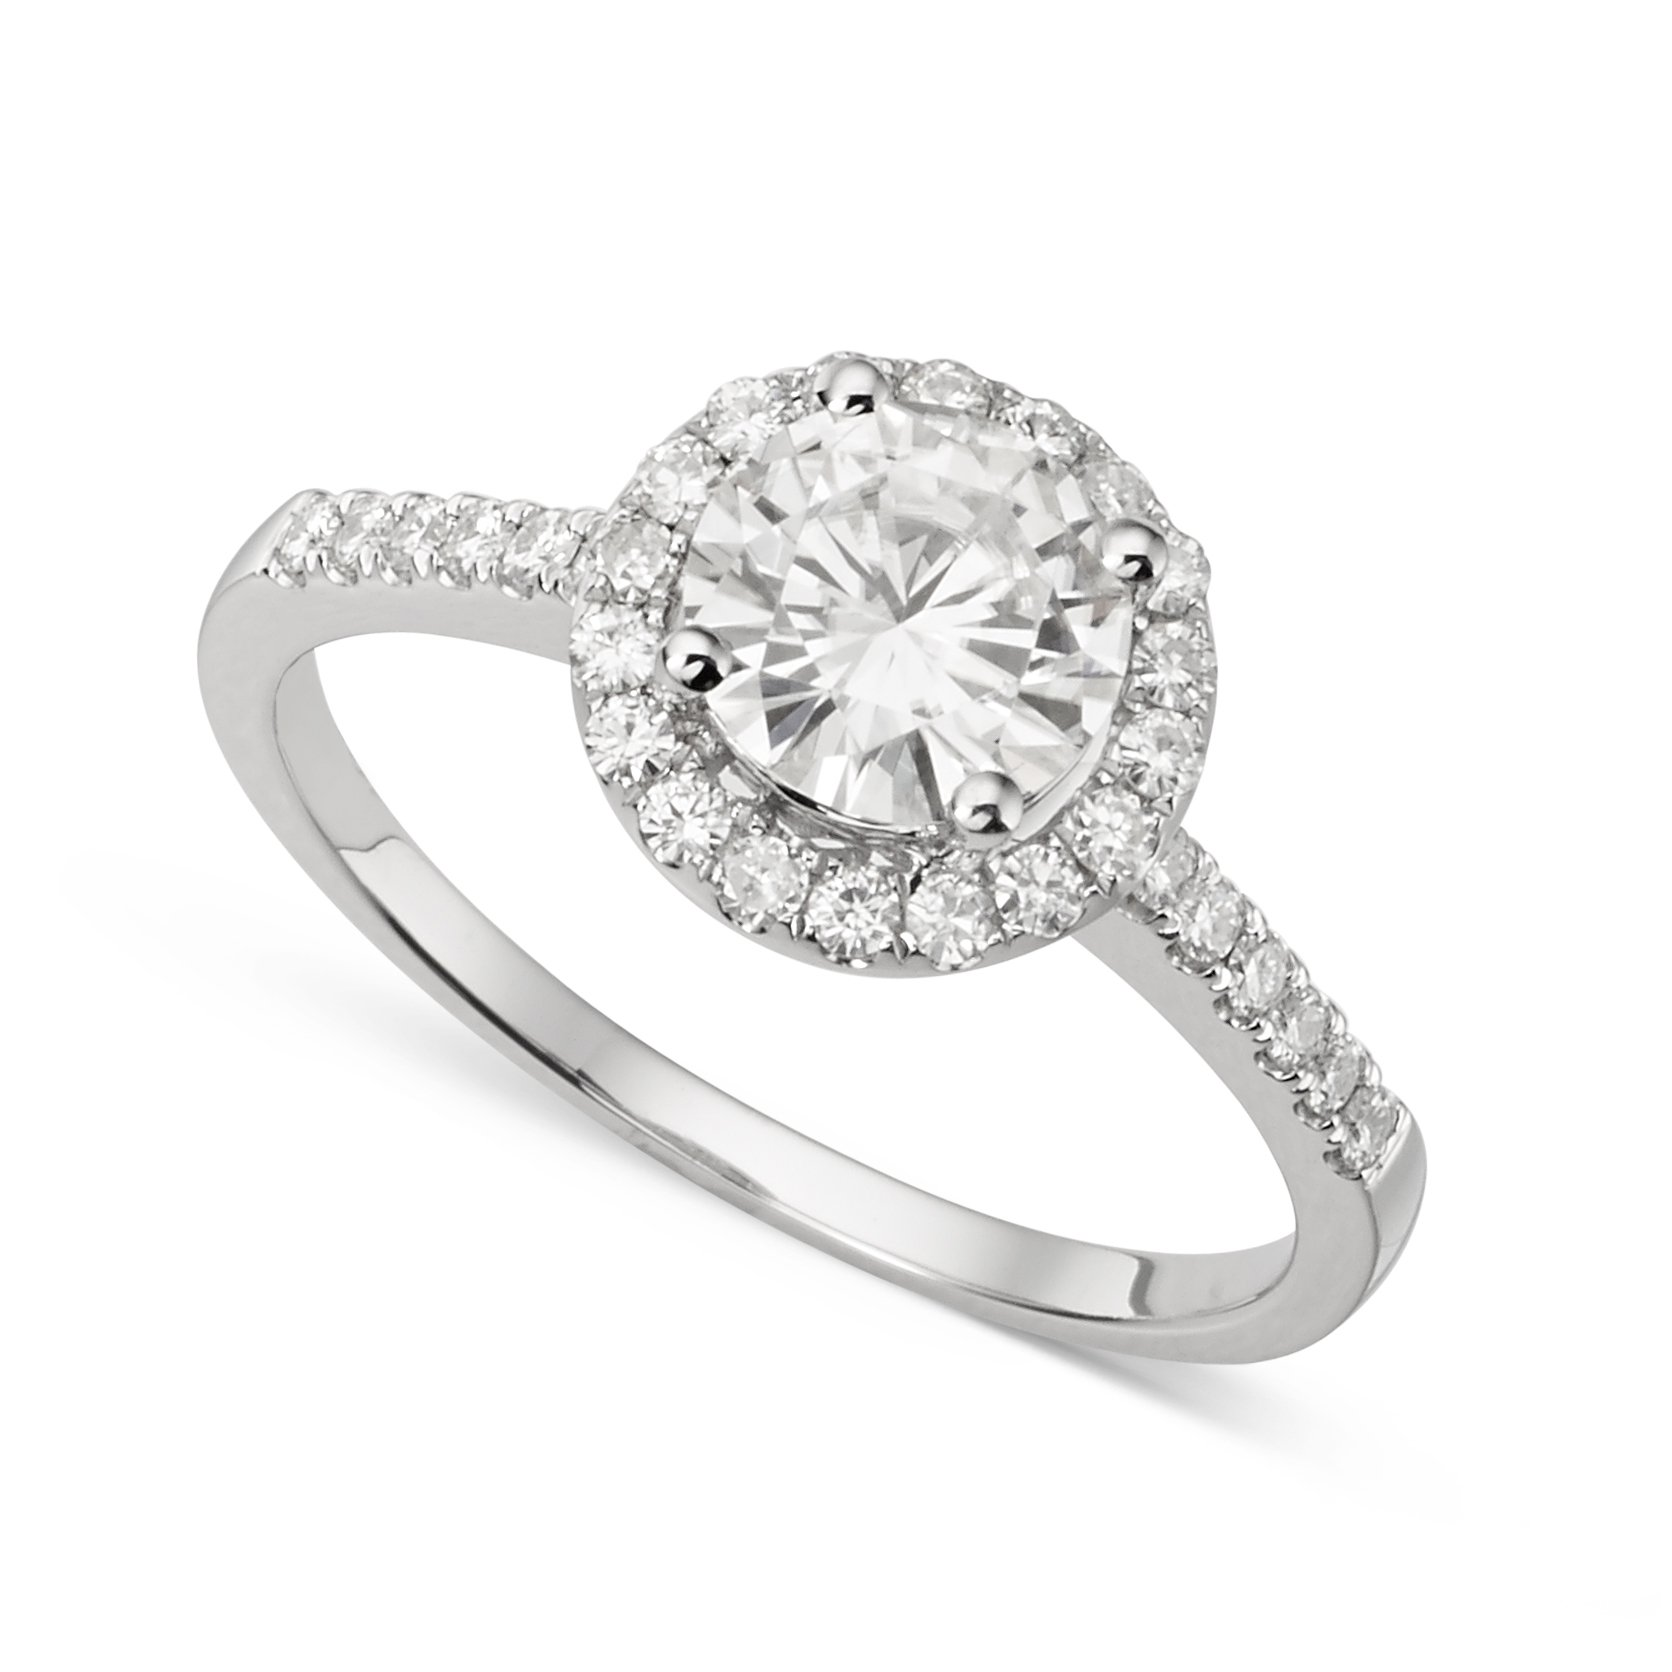 Forever Brilliant 6.5mm Moissanite Engagement Ring - size 6, 1.30cttw DEW by Charles & Colvard